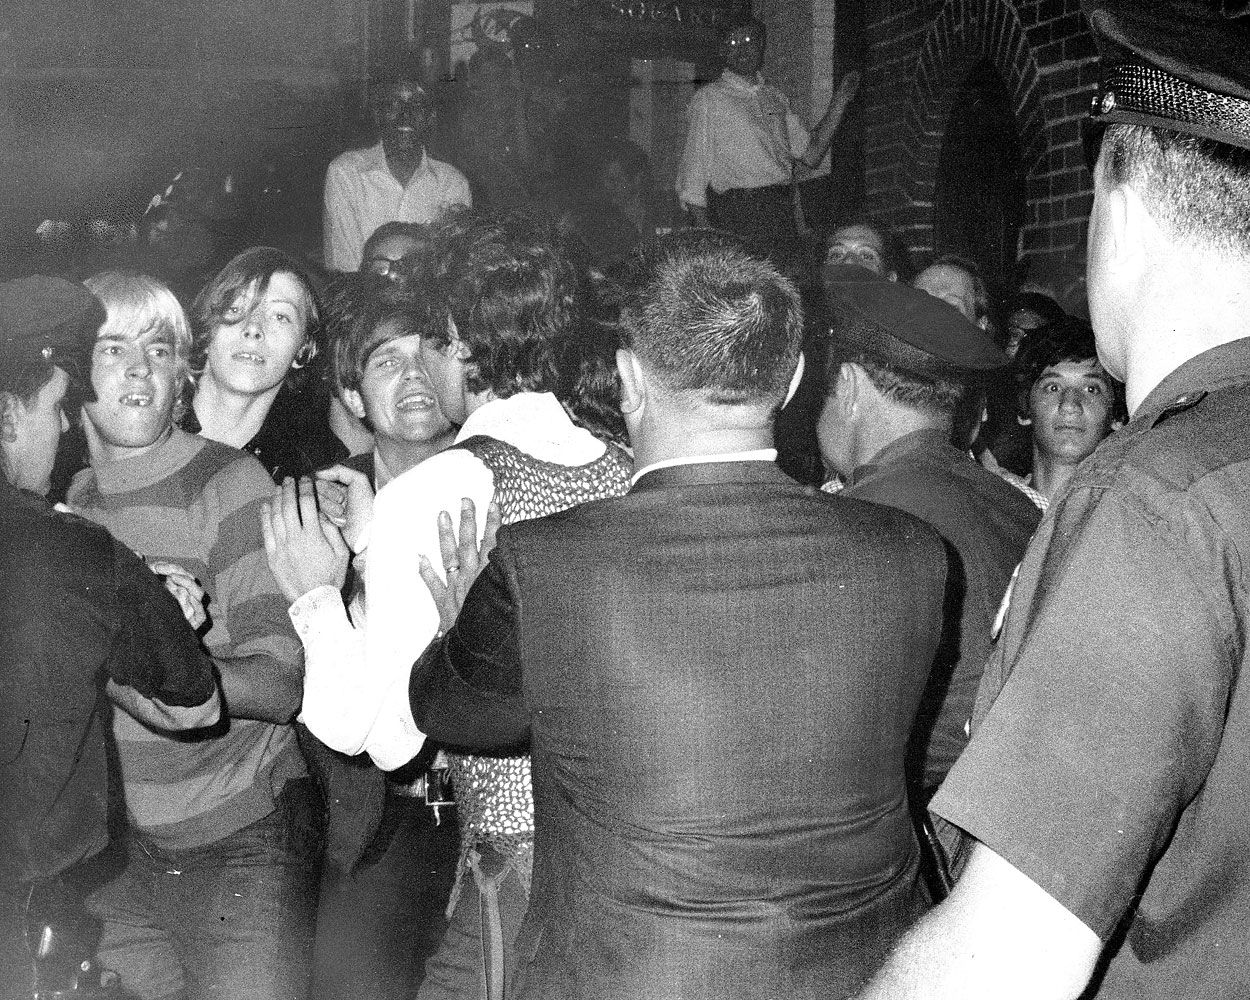 A crowd attempts to impede police arrests outside the Stonewall Inn in Greenwich Village, New York City, on June 28, 1969